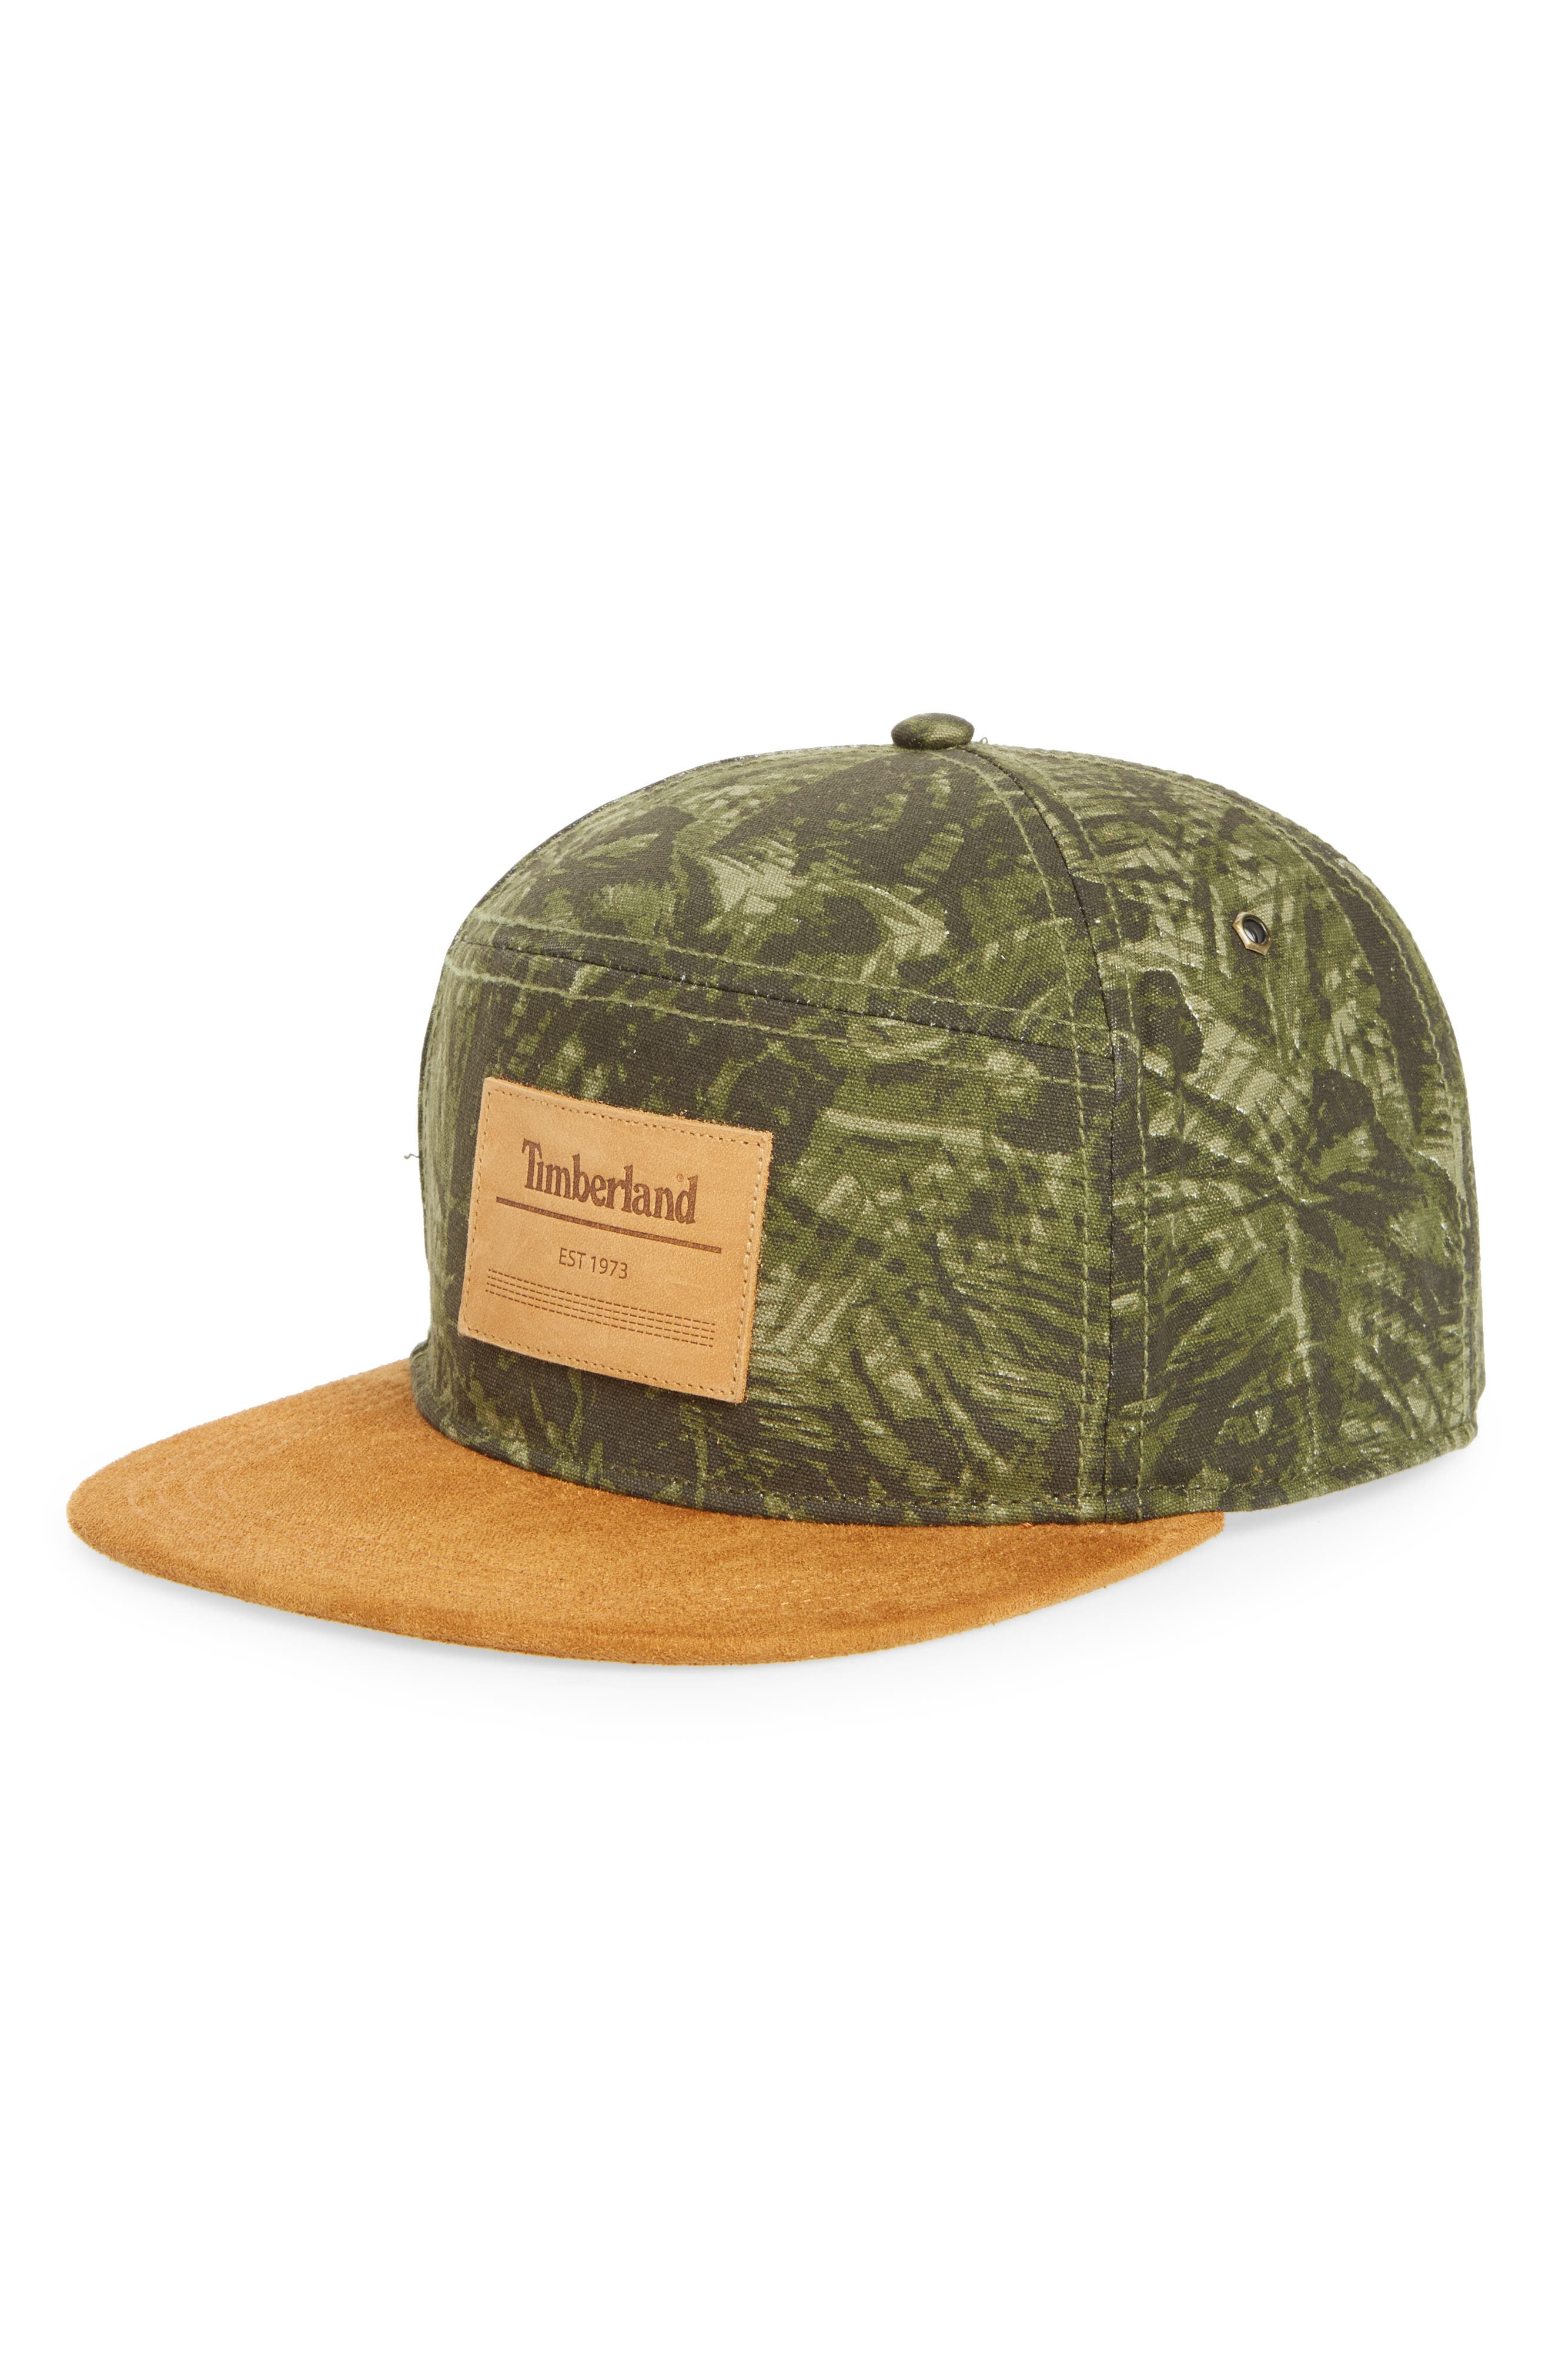 f7737533 Men's Timberland Hats, Hats for Men | Nordstrom